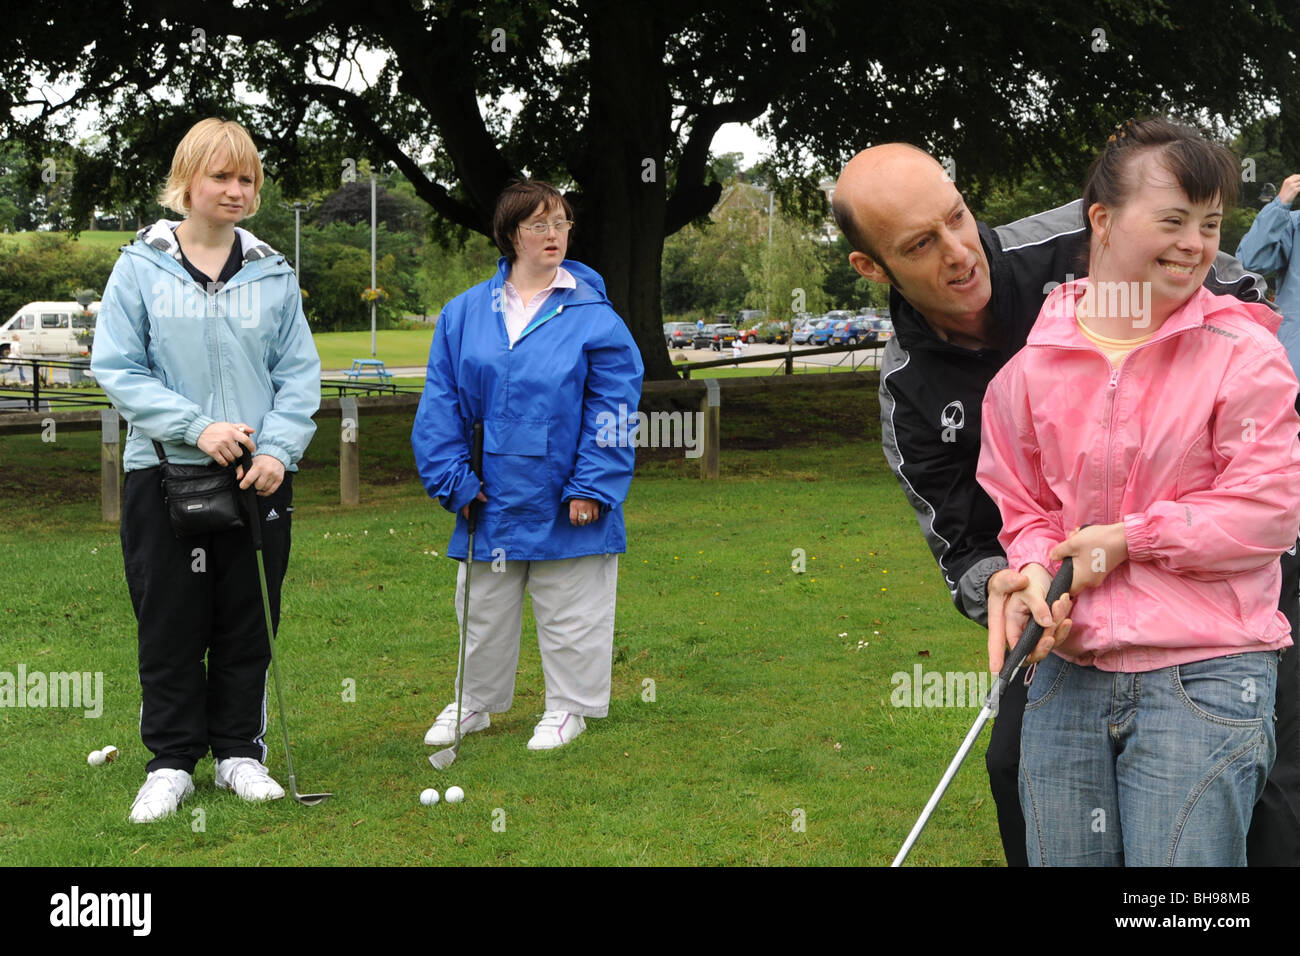 Two women with learning disabilities play pitch and putt, North Yorkshire - Stock Image